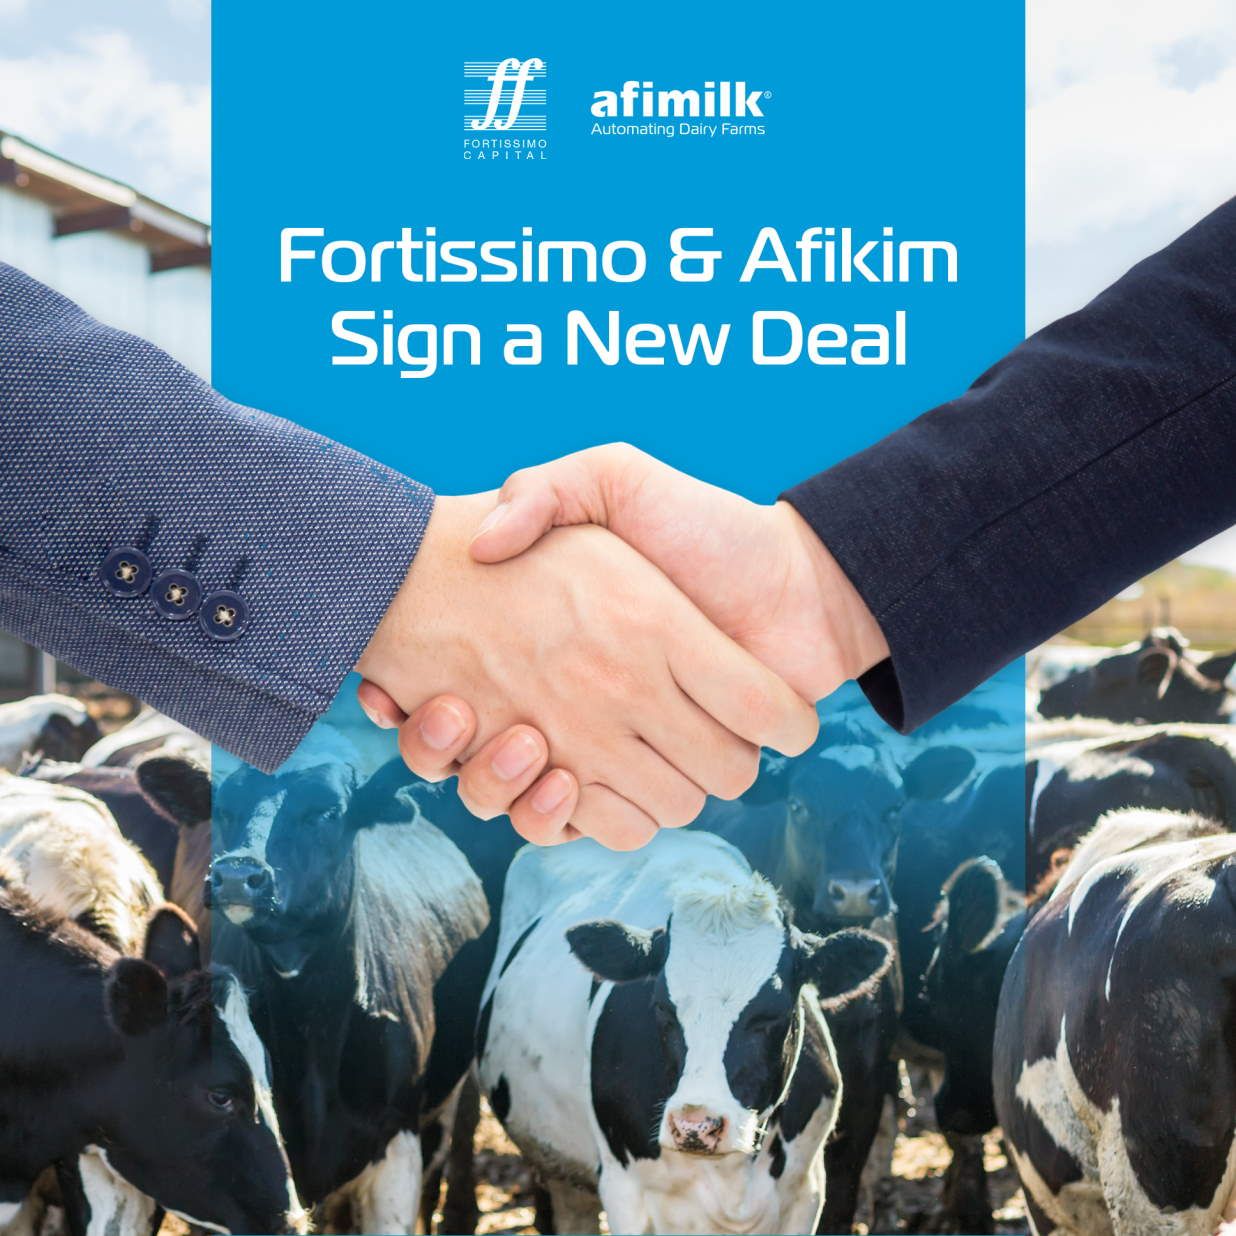 Fortissimo deal with Afimilk